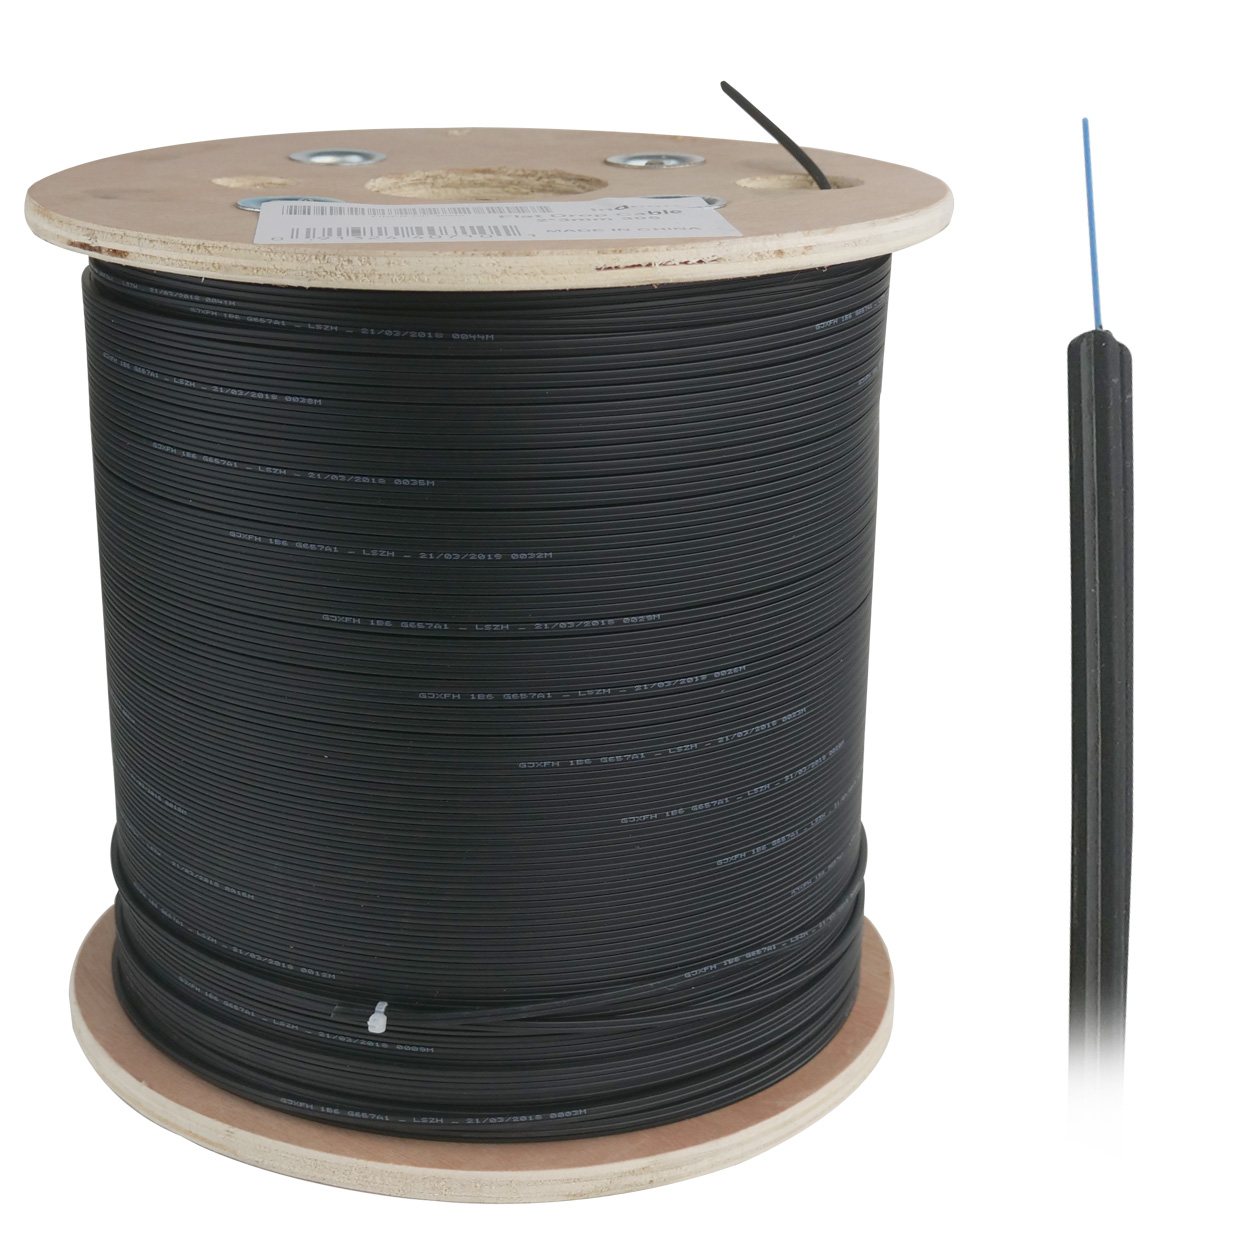 Leapmicro indoor Fiber Drop Cable, LSZH 1 Fiber 9/125 Single-mode - 305 Meter (1000ft)